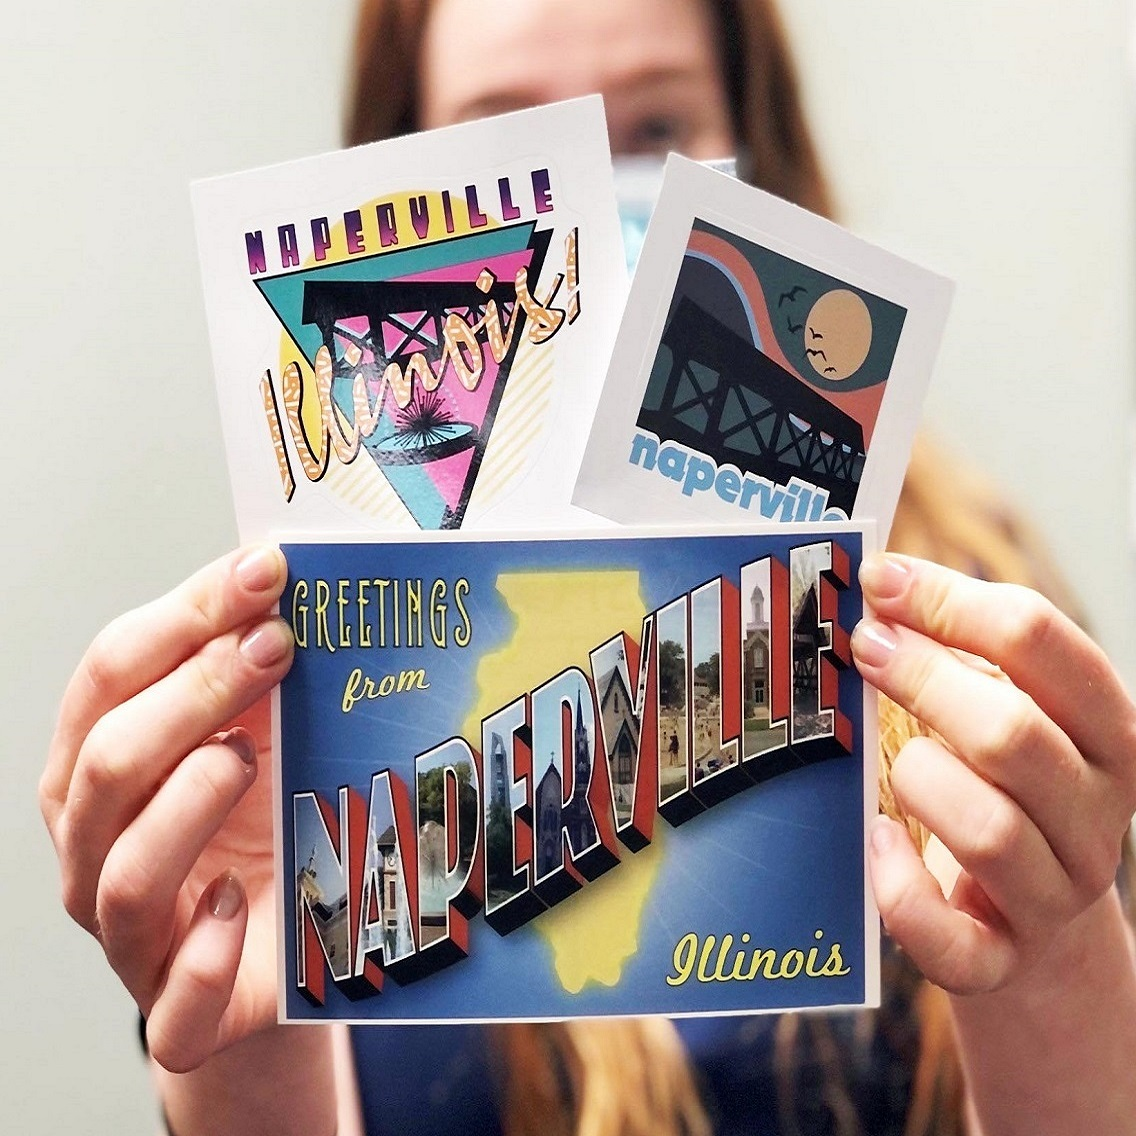 Naperville stickers homepage image. A woman holding an assortment of Naperville, IL stickers.